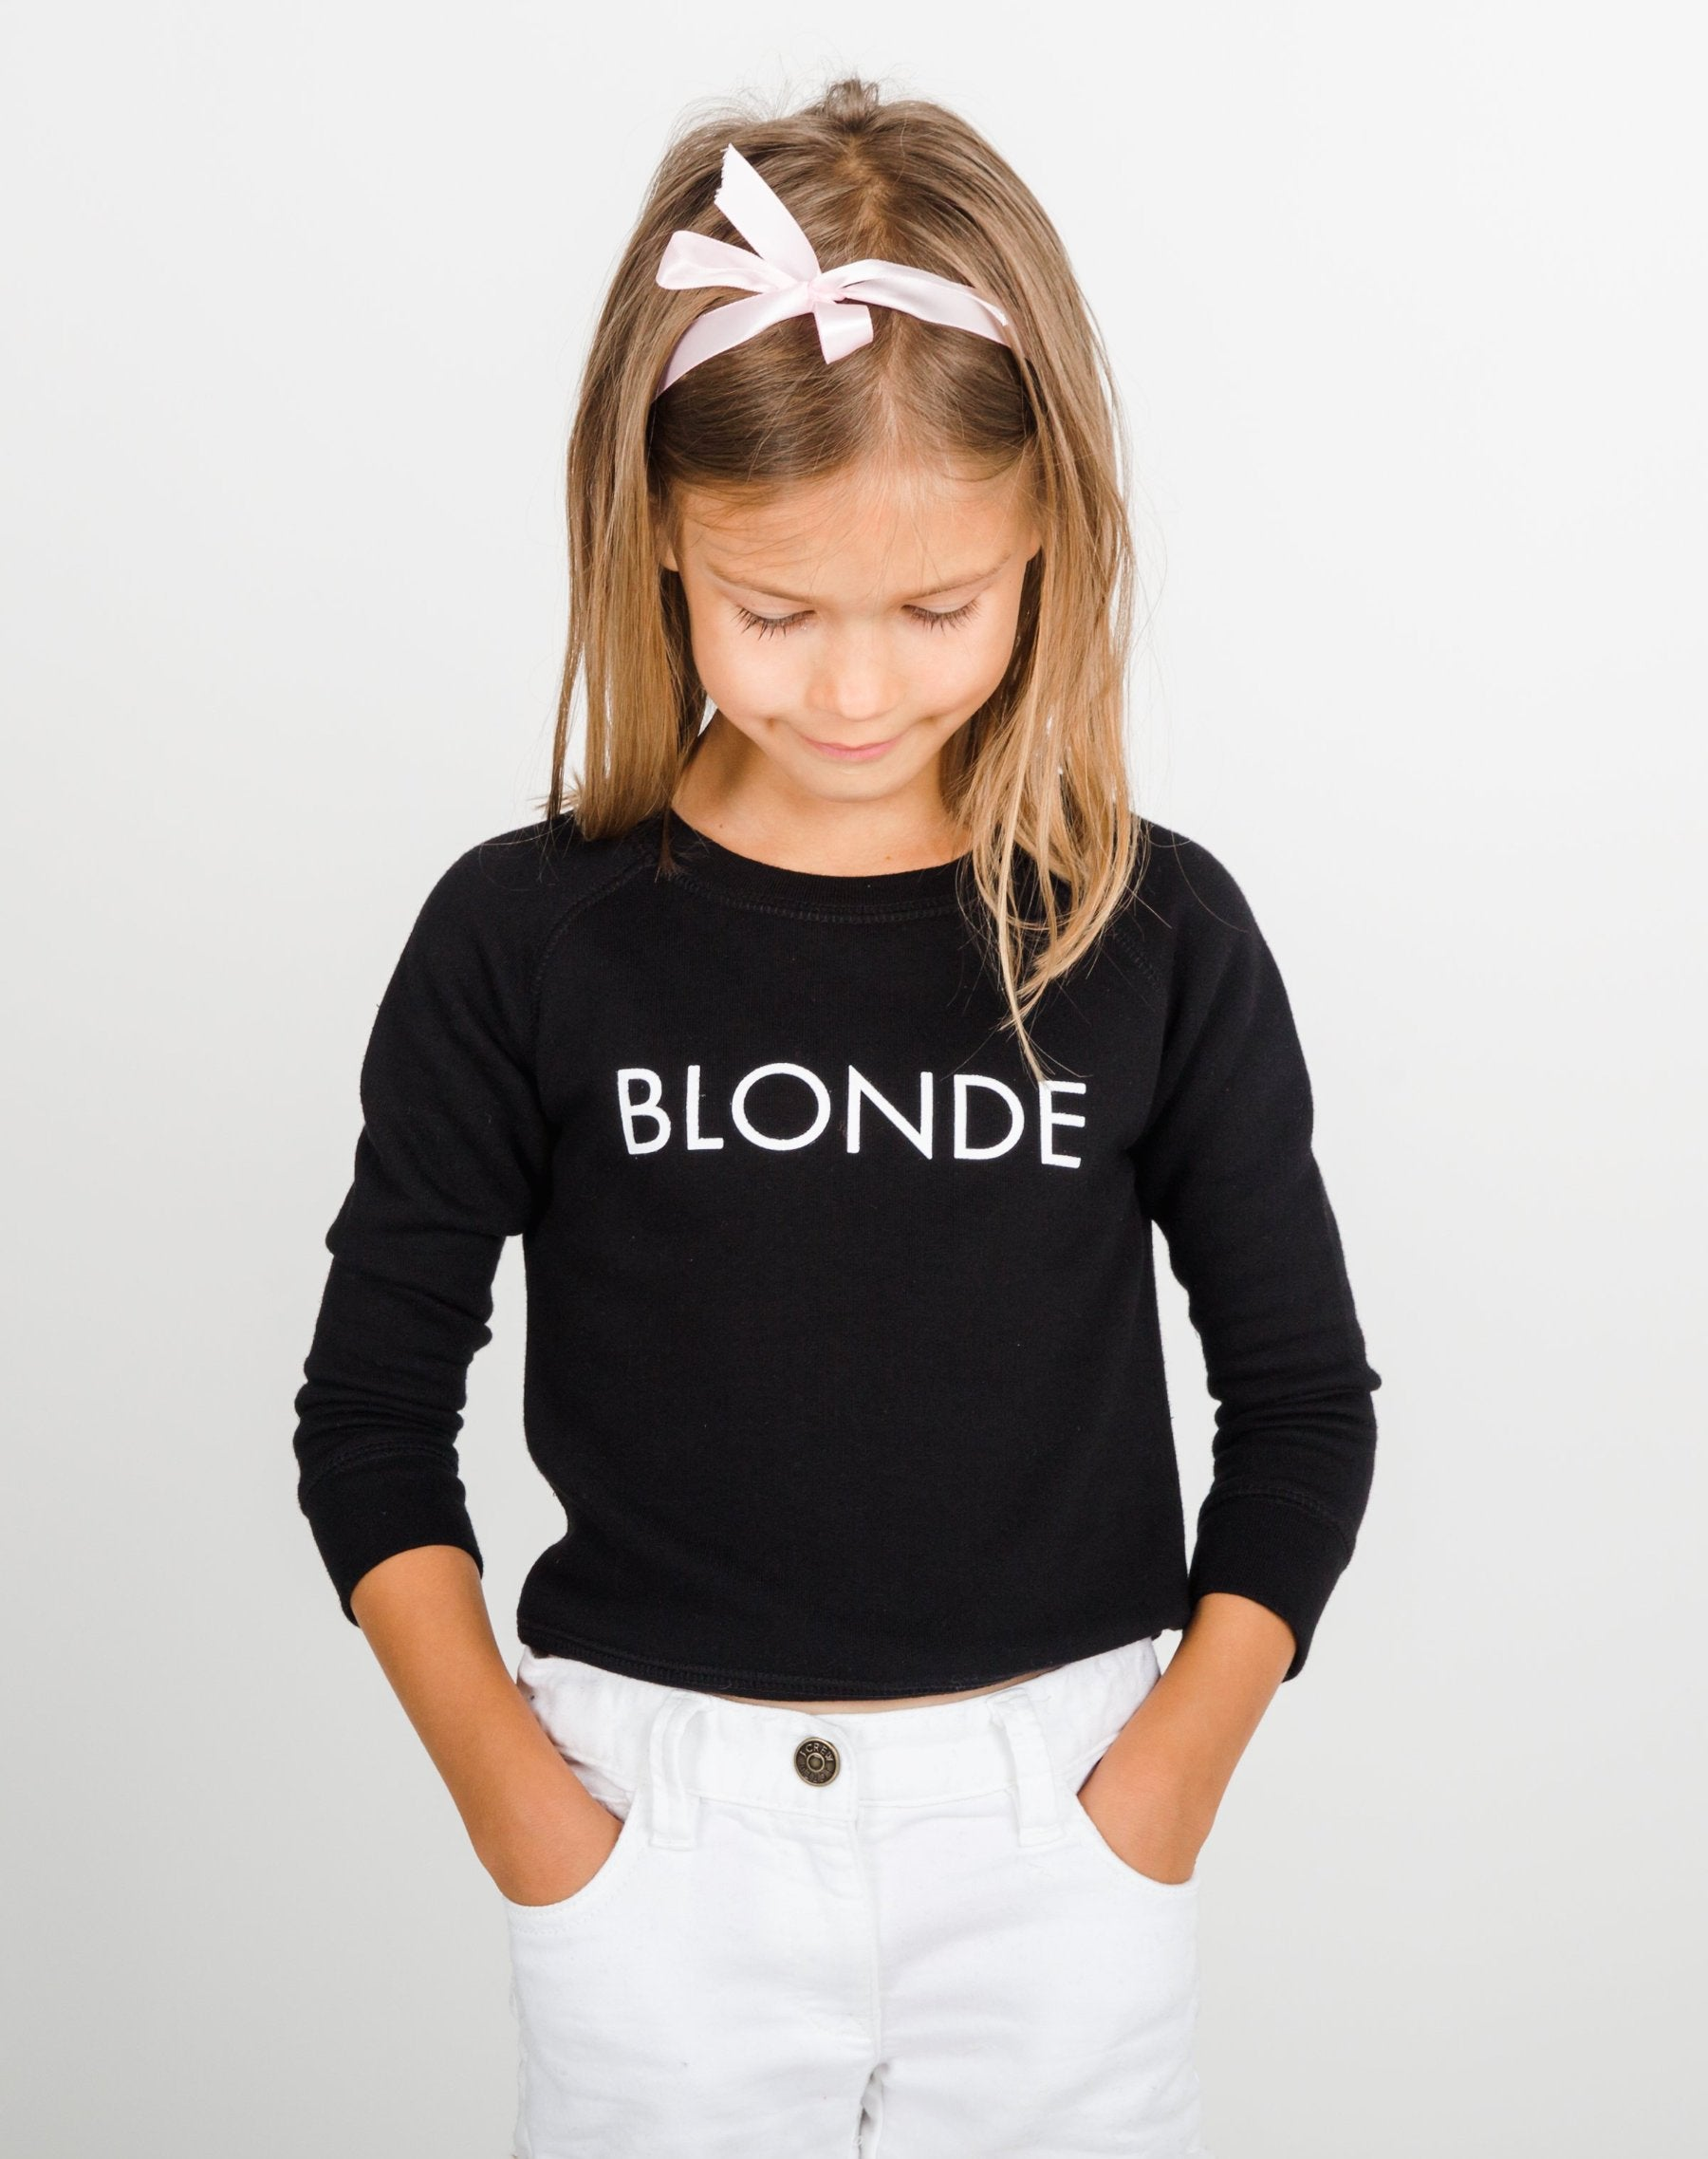 Photo 2 of the Blonde Little Babes classic crew neck sweatshirt in black by Brunette the Label.